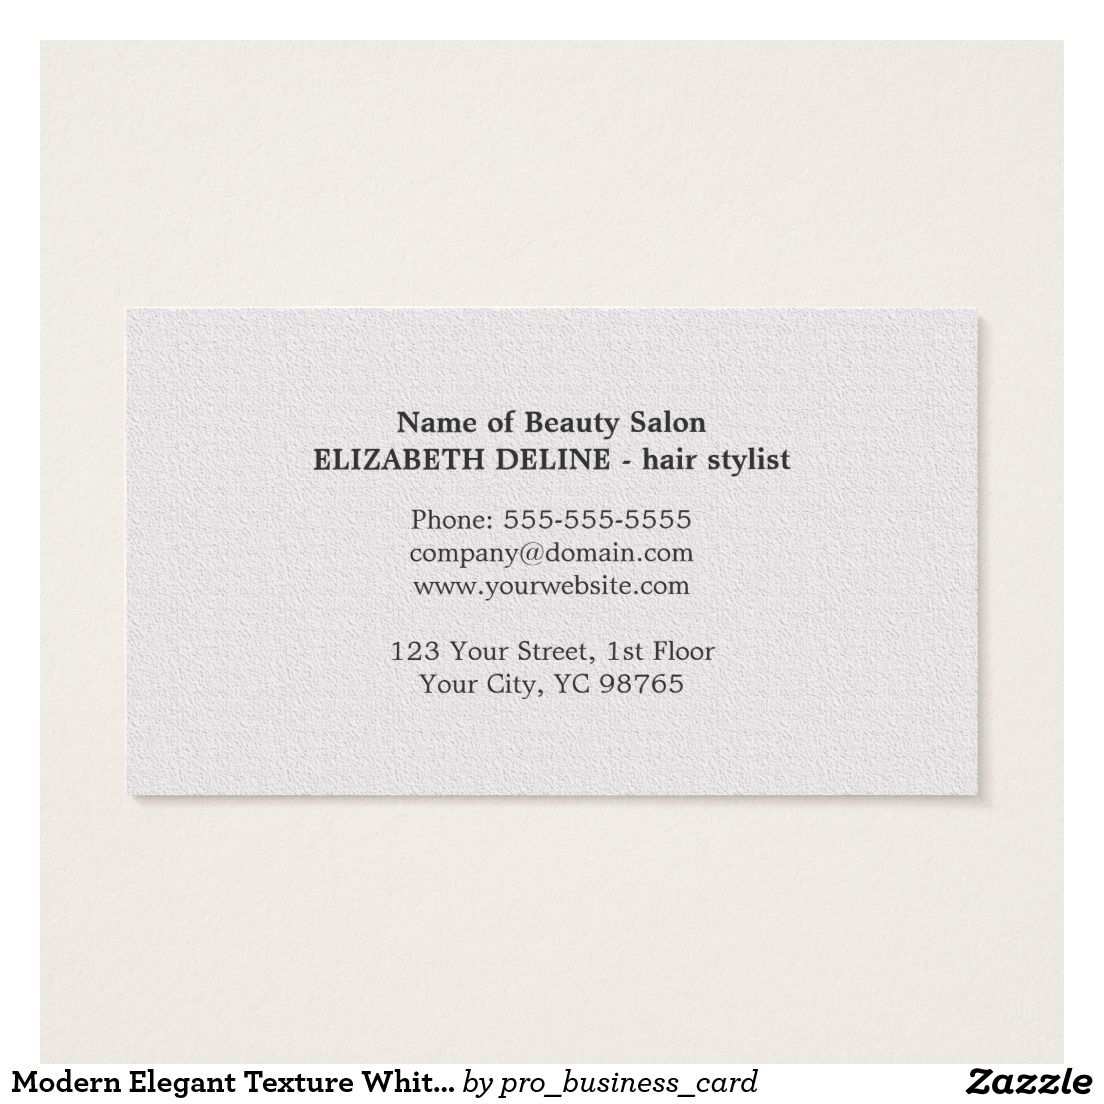 Cool Elegant Business Card Template With Unique Texture White Background And Scissor Pattern